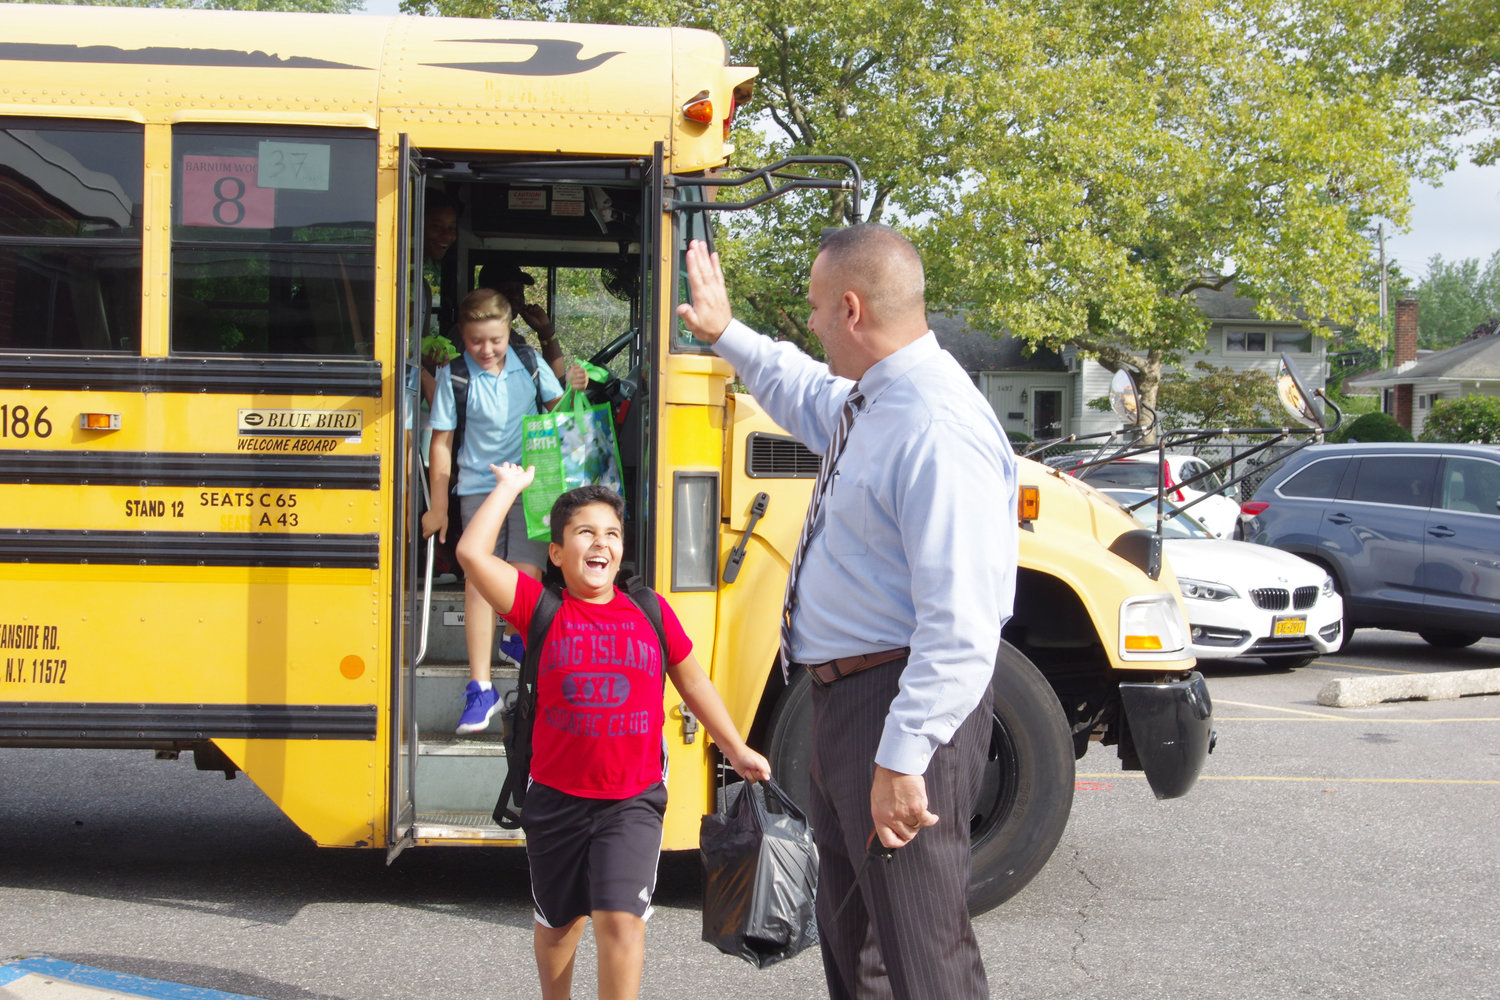 Adam Menwer, a fifth-grade student, gave a high-five to Principal Gregory Bottari after getting off the bus.